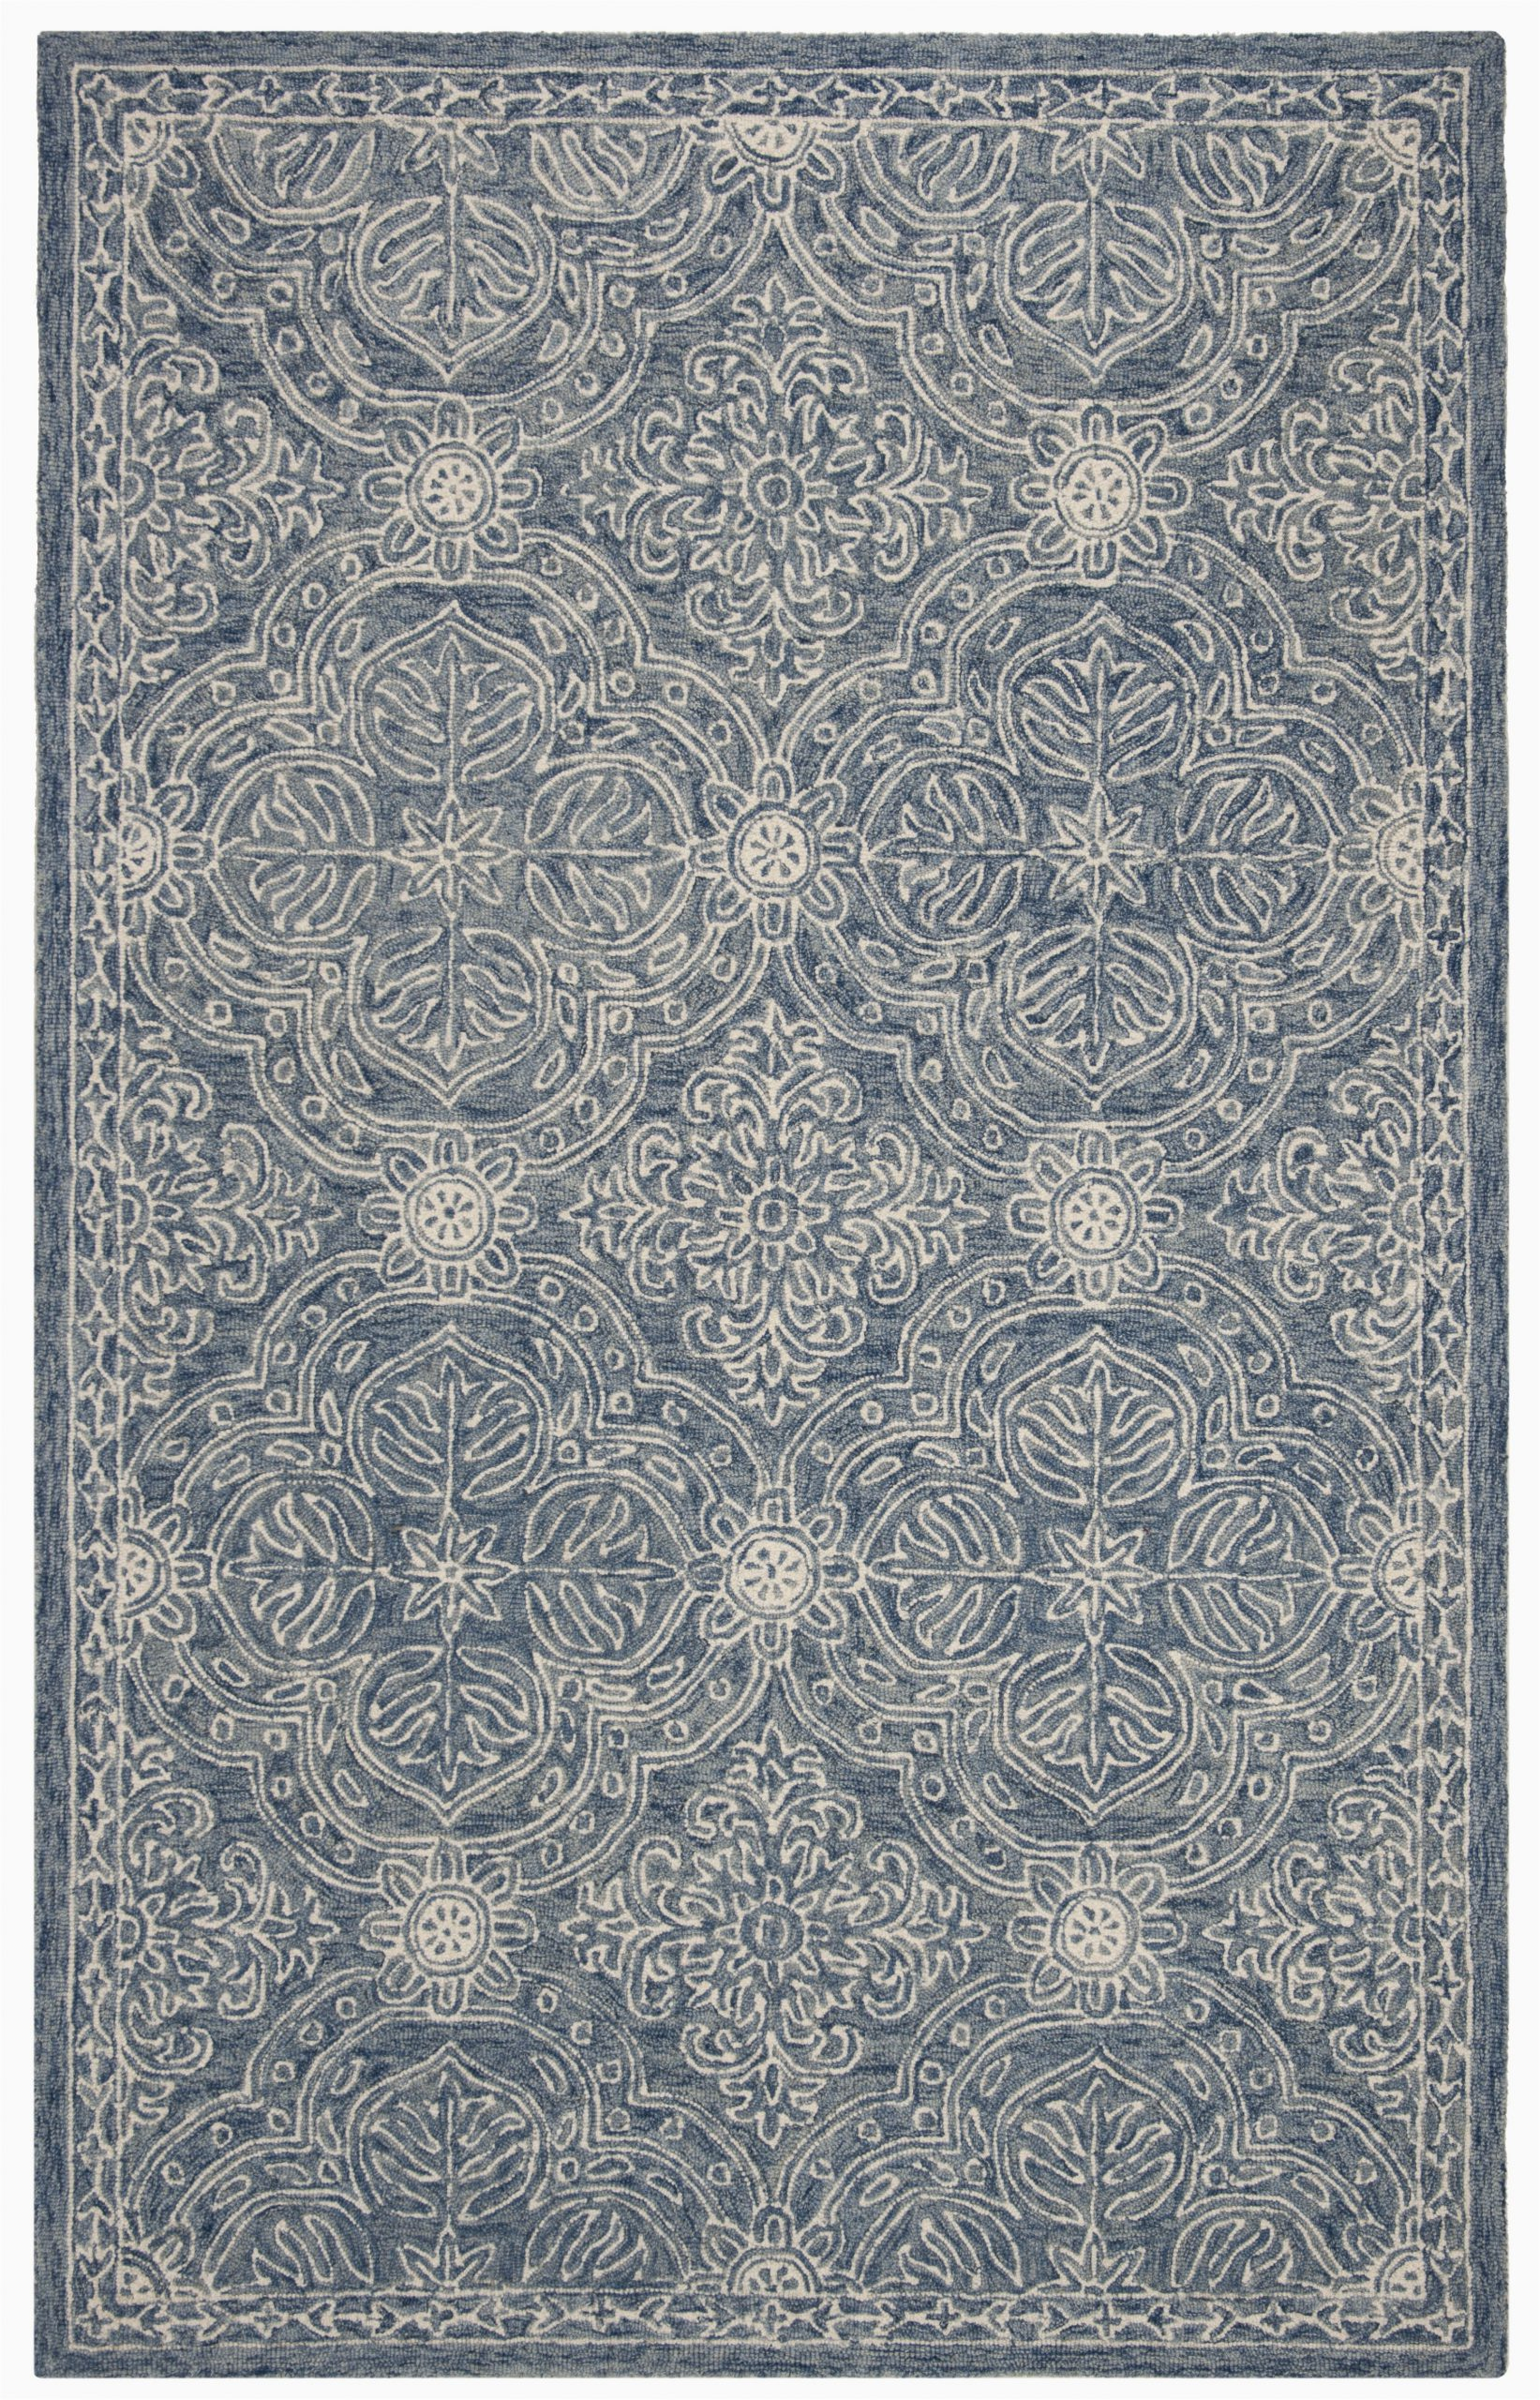 etienne hand tufted wool blueivory area rug